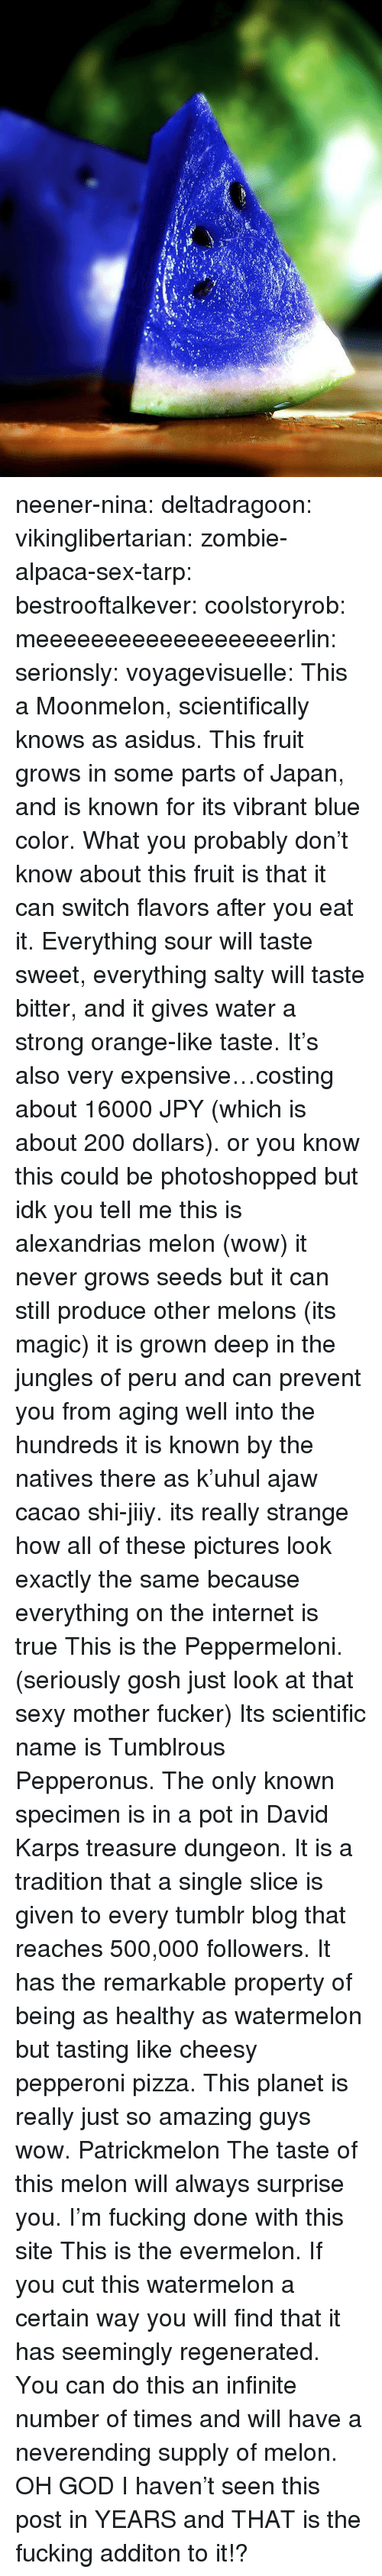 Bailey Jay, Fucking, and God: neener-nina:  deltadragoon:  vikinglibertarian:  zombie-alpaca-sex-tarp:  bestrooftalkever:  coolstoryrob:  meeeeeeeeeeeeeeeeeeerlin:  serionsly:  voyagevisuelle:  This a Moonmelon, scientifically knows as asidus. This fruit grows in some parts of Japan, and is known for its vibrant blue color. What you probably don't know about this fruit is that it can switch flavors after you eat it. Everything sour will taste sweet, everything salty will taste bitter, and it gives water a strong orange-like taste. It's also very expensive…costing about ¥16000 JPY (which is about 200 dollars).  or you know this could be photoshopped  but idk you tell me   this is alexandrias melon (wow) it never grows seeds but it can still produce other melons (its magic) it is grown deep in the jungles of peru and can prevent you from aging well into the hundreds it is known by the natives there as k'uhul ajaw cacao shi-jiiy. its really strange how all of these pictures look exactly the same because everything on the internet is true   This is the Peppermeloni. (seriously gosh just look at that sexy mother fucker) Its scientific name is Tumblrous Pepperonus. The only known specimen is in a pot in David Karps treasure dungeon. It is a tradition that a single slice is given to every tumblr blog that reaches 500,000 followers. It has the remarkable property of being as healthy as watermelon but tasting like cheesy pepperoni pizza. This planet is really just so amazing guys wow.   Patrickmelon The taste of this melon will always surprise you.  I'm fucking done with this site   This is the evermelon. If you cut this watermelon a certain way you will find that it has seemingly regenerated. You can do this an infinite number of times and will have a neverending supply of melon.    OH GOD I haven't seen this post in YEARS and THAT is the fucking additon to it!?